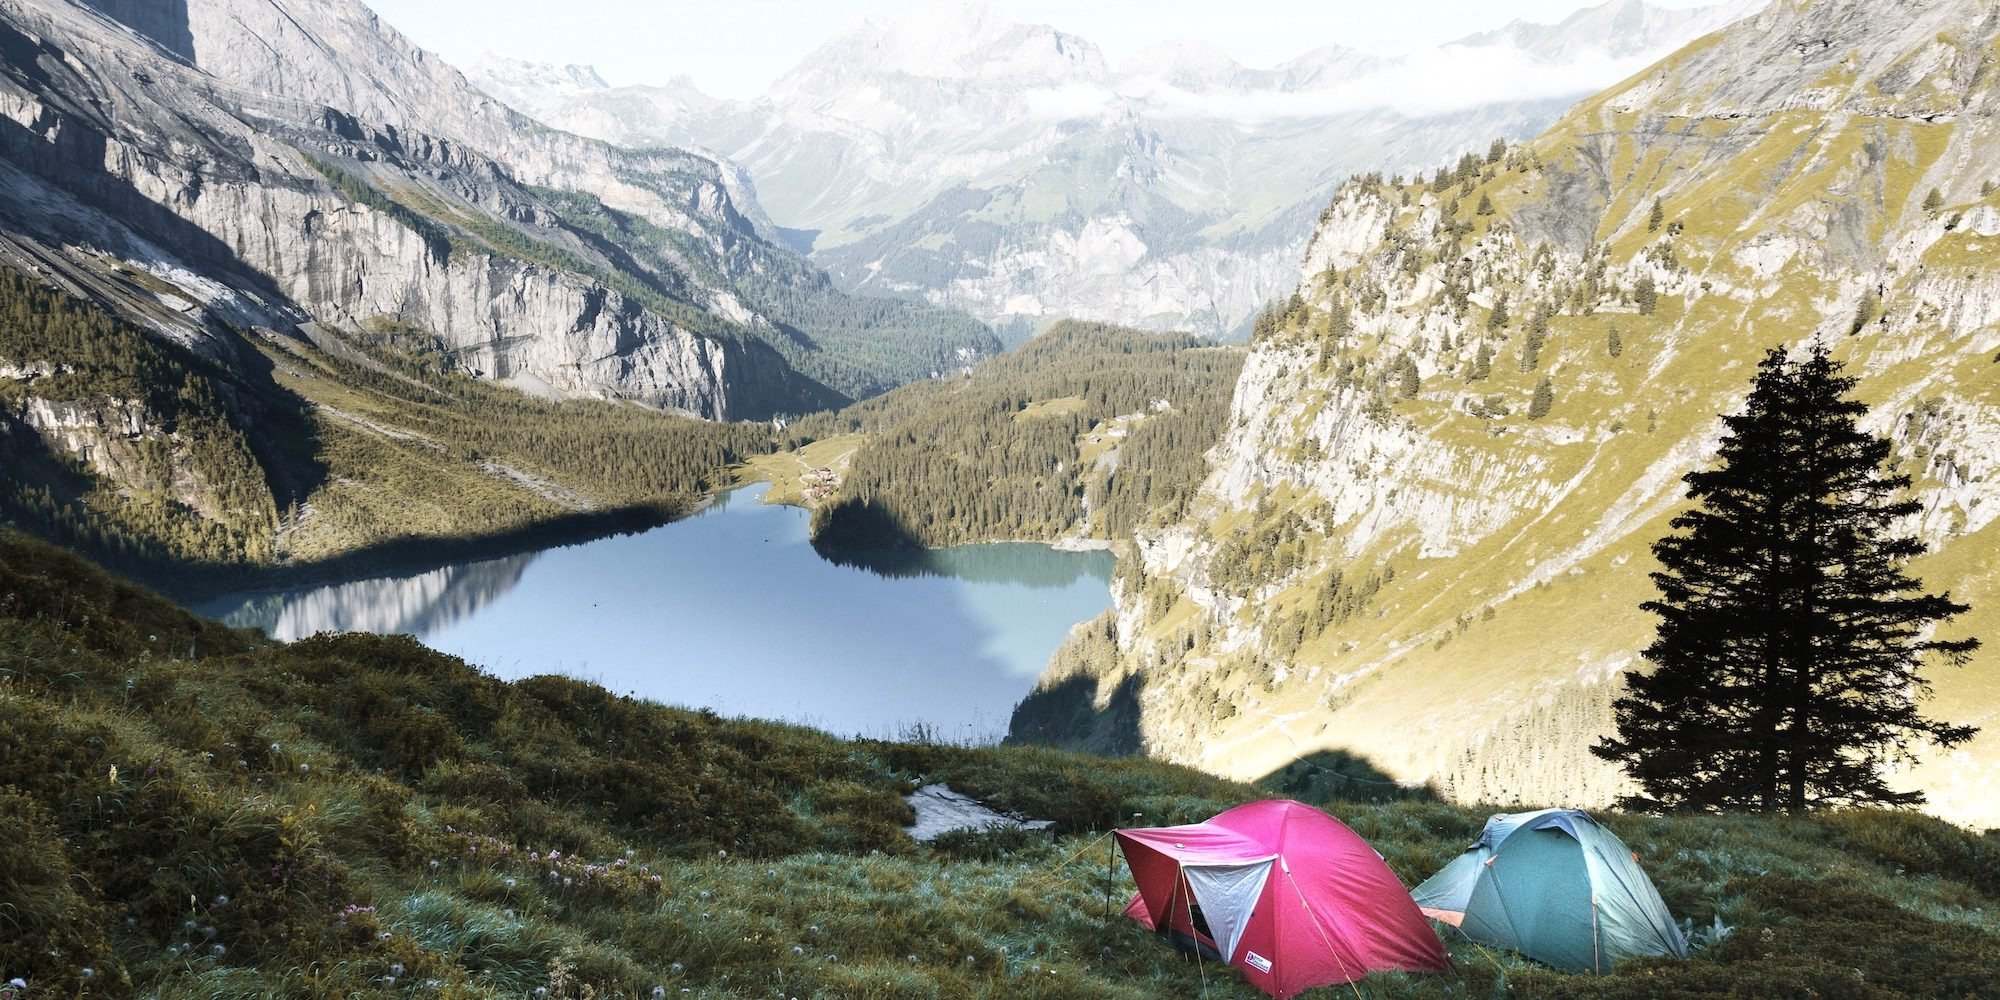 Pink & green tent in a valley between mountains with a lake in the background